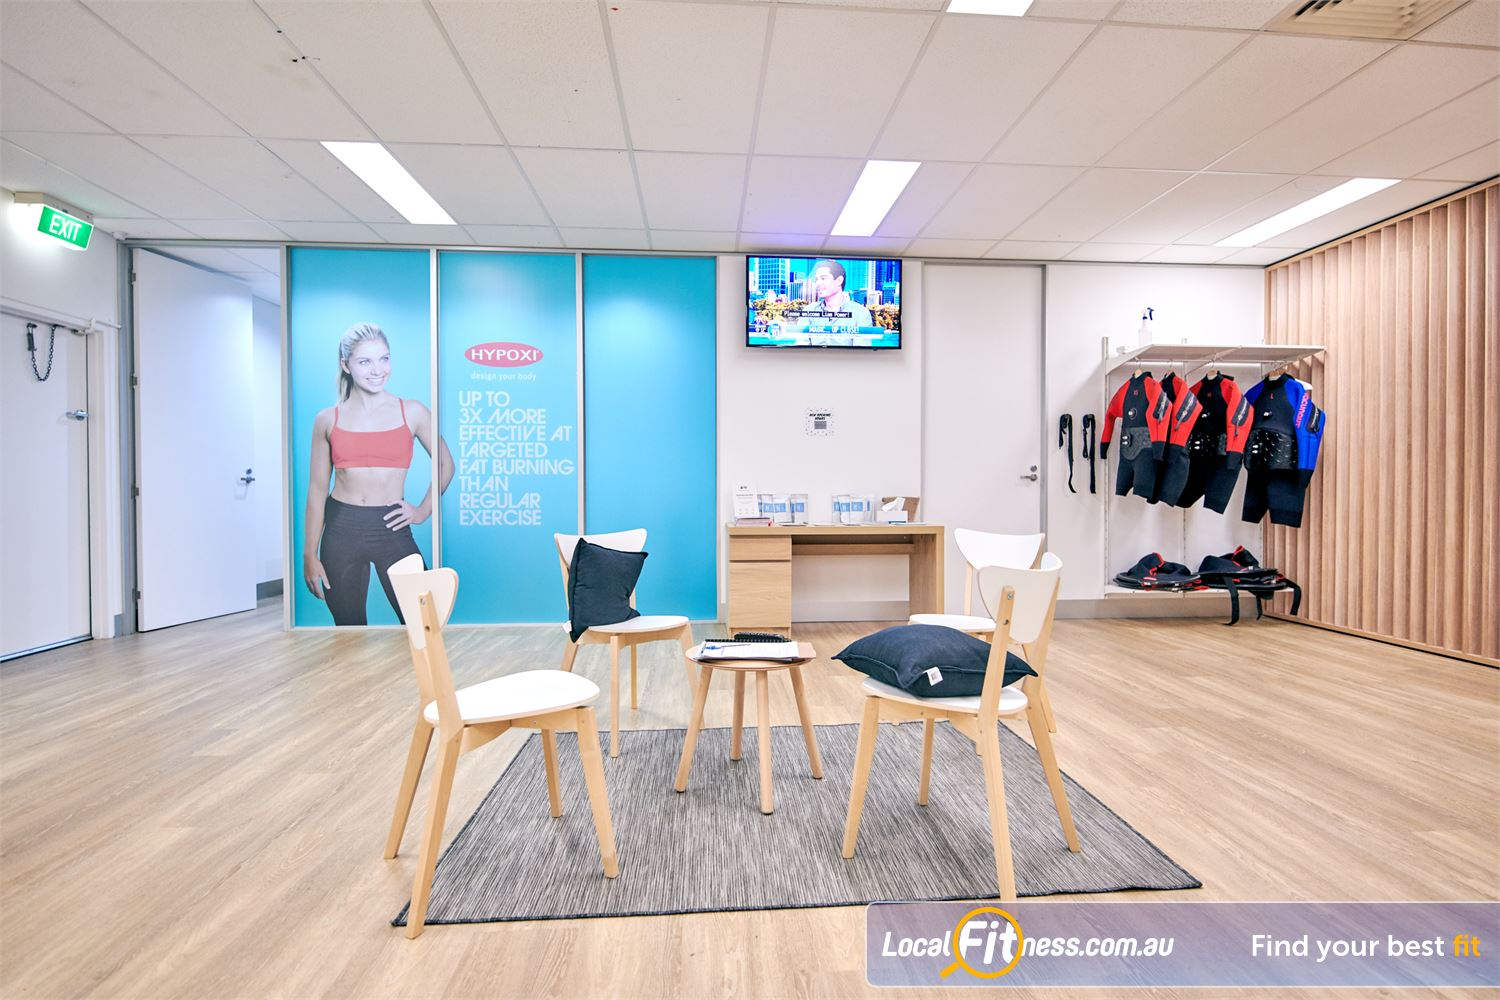 HYPOXI Weight Loss Balgowlah Our Balgowlah HYPOXI-Coaches will sit with you to determine your weight loss goals.